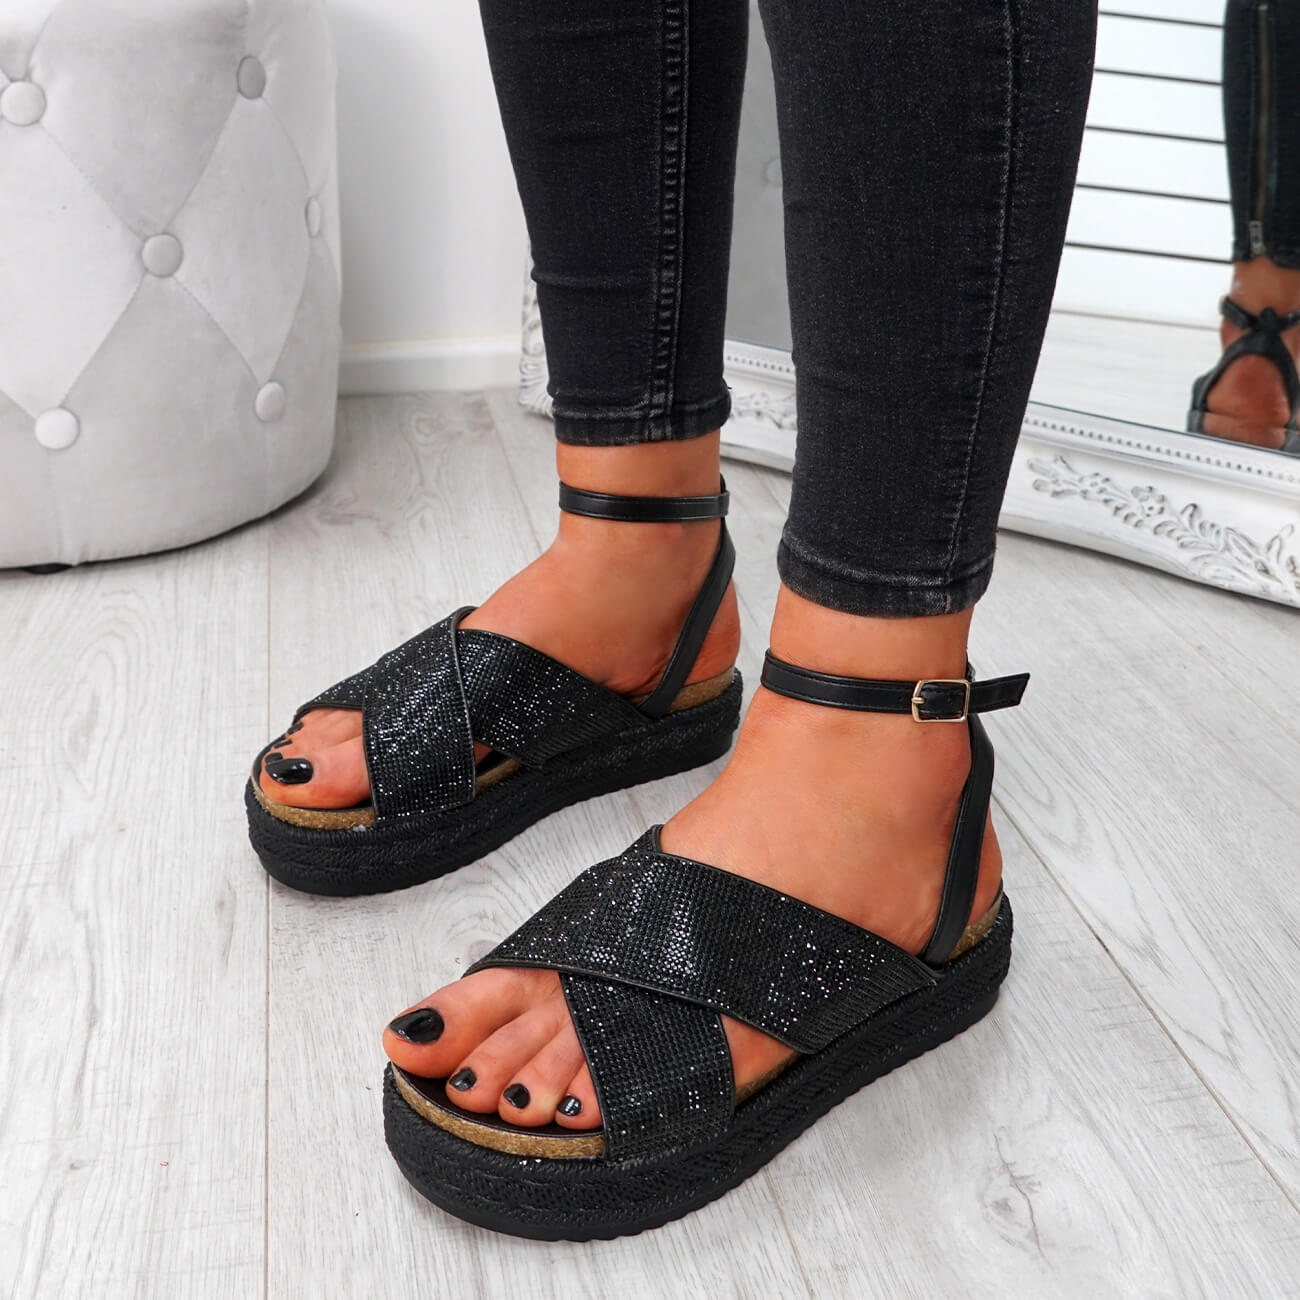 WOMENS-LADIES-ANKLE-STRAP-PEEP-TOE-STUDDED-LOW-HEEL-SANDALS-SHOES-SIZE-UK thumbnail 9